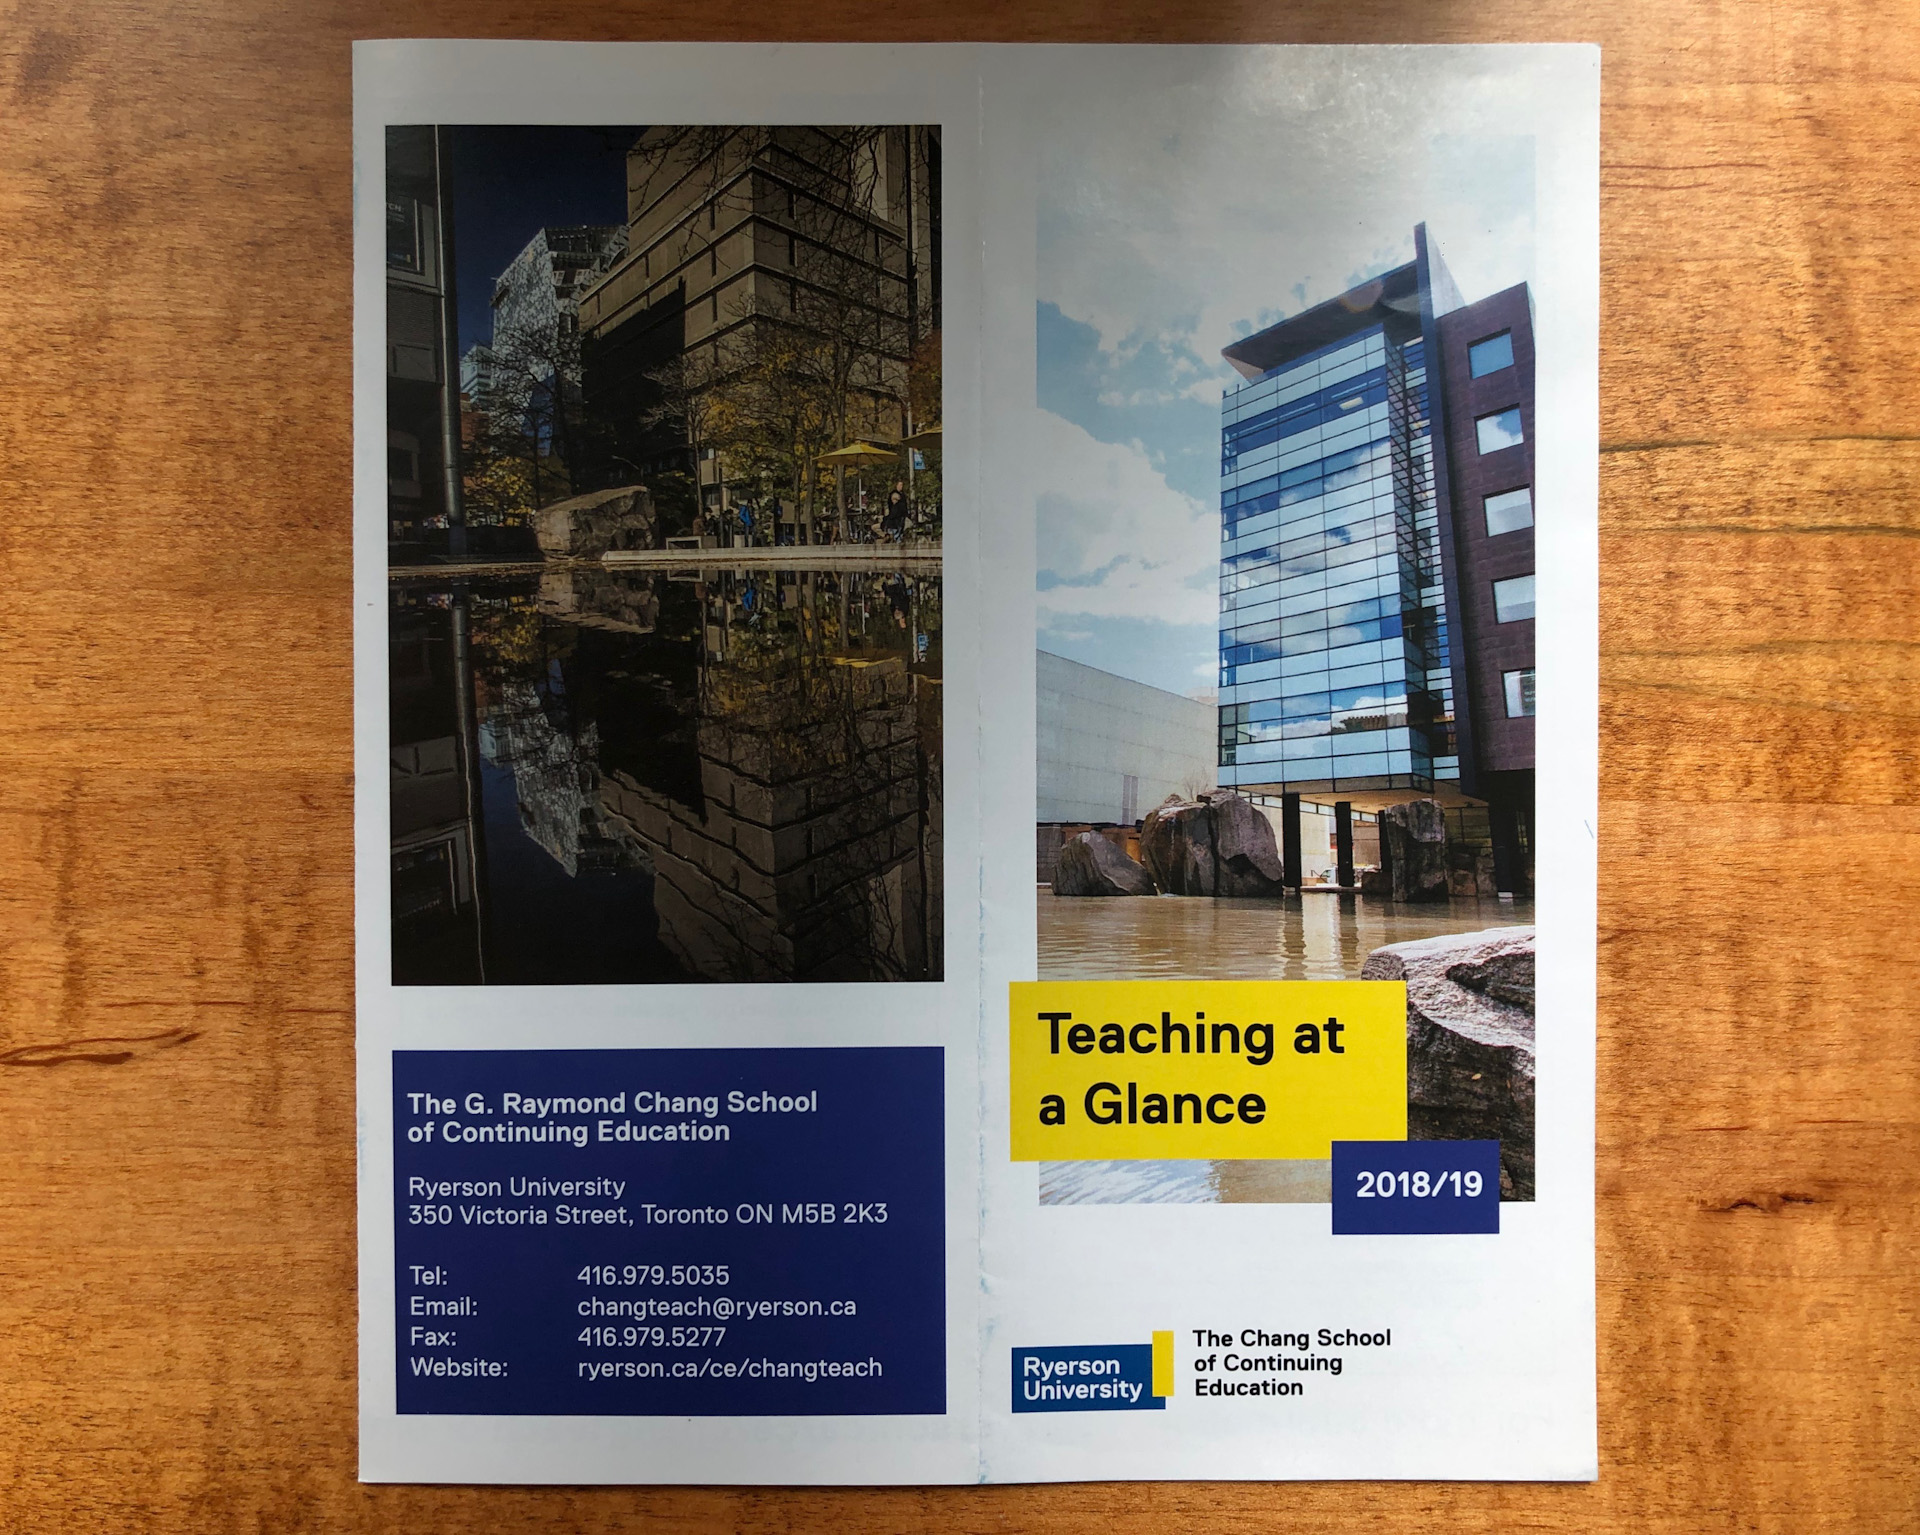 Ryerson University - Teaching at a glance